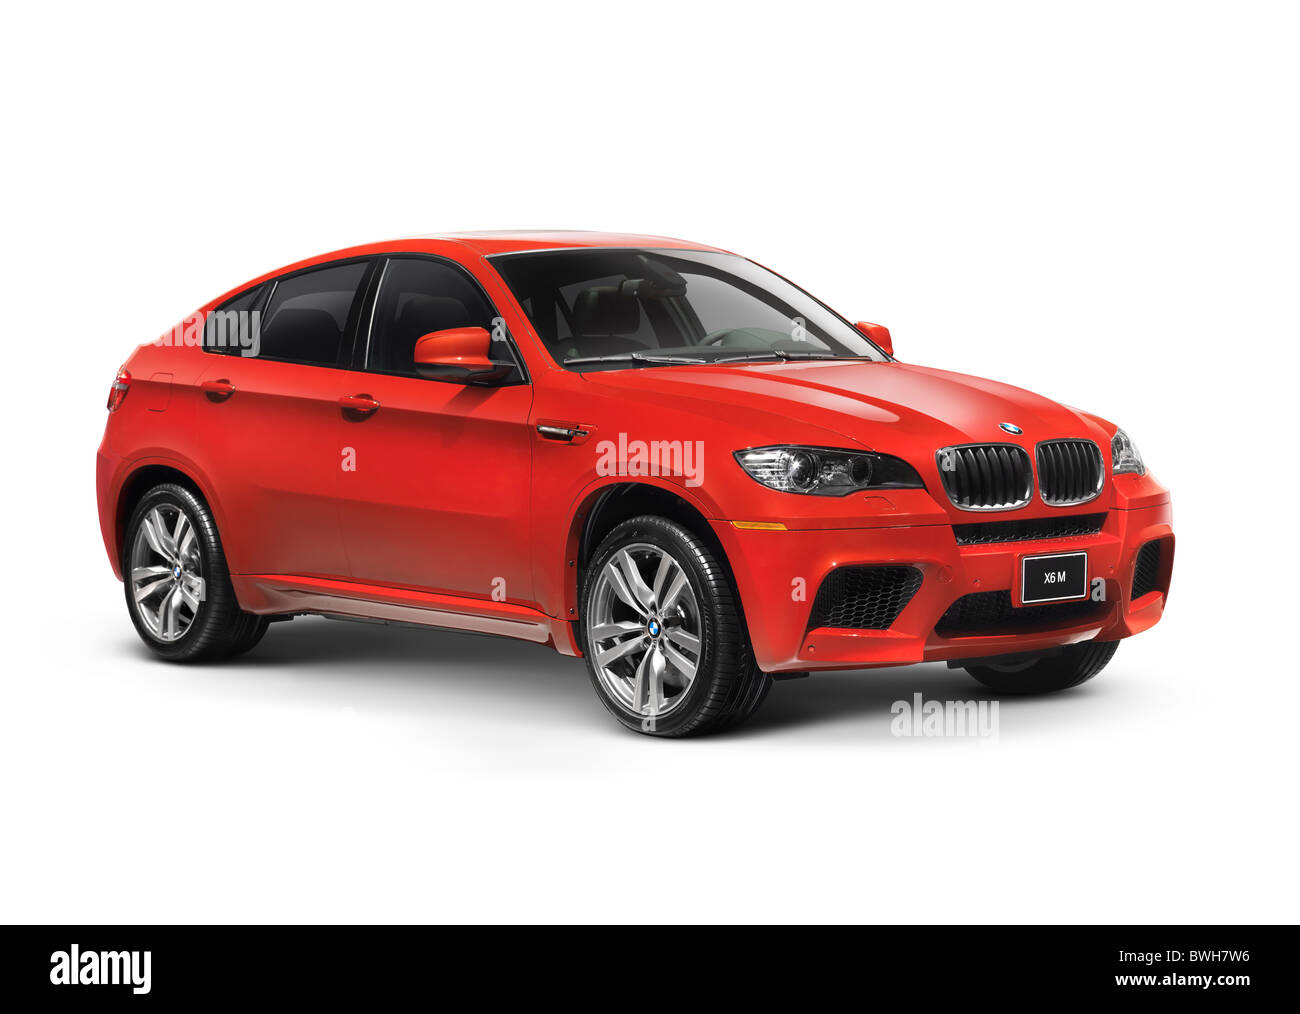 Red 2011 BMW X6 M crossover. Isolated car on white background with clipping path. - Stock Image